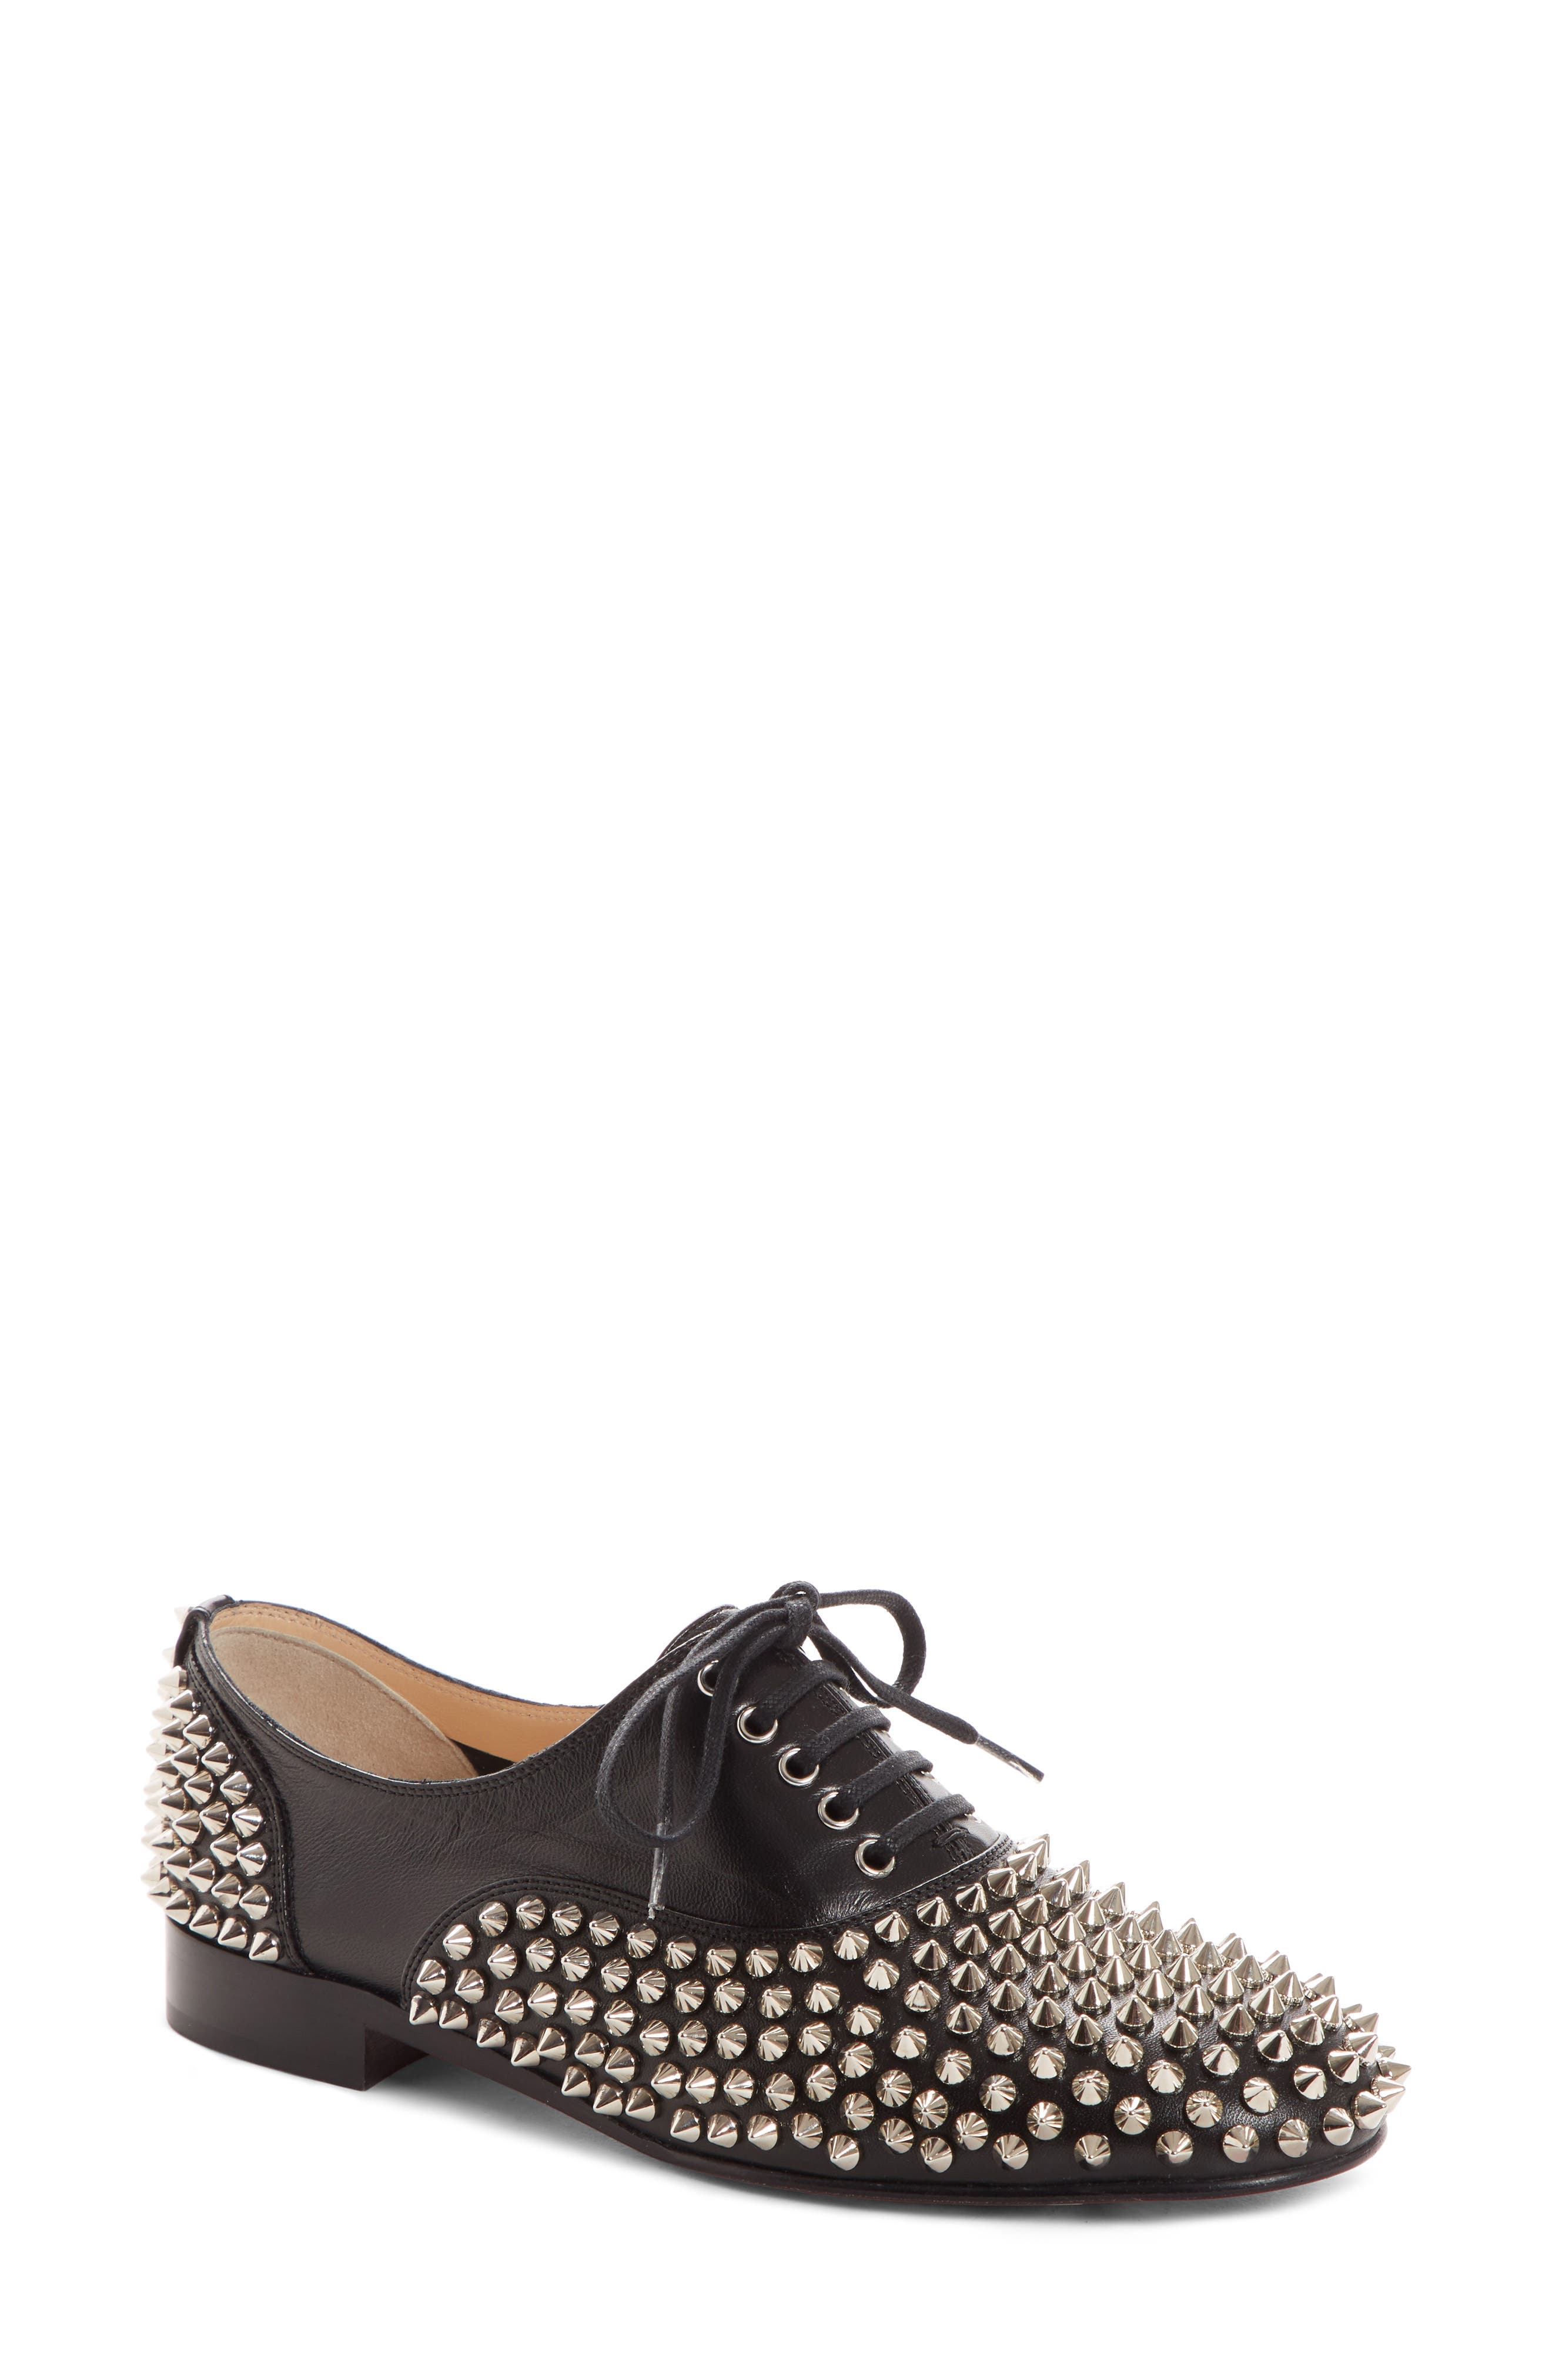 Christian Louboutin Freddy Spiked